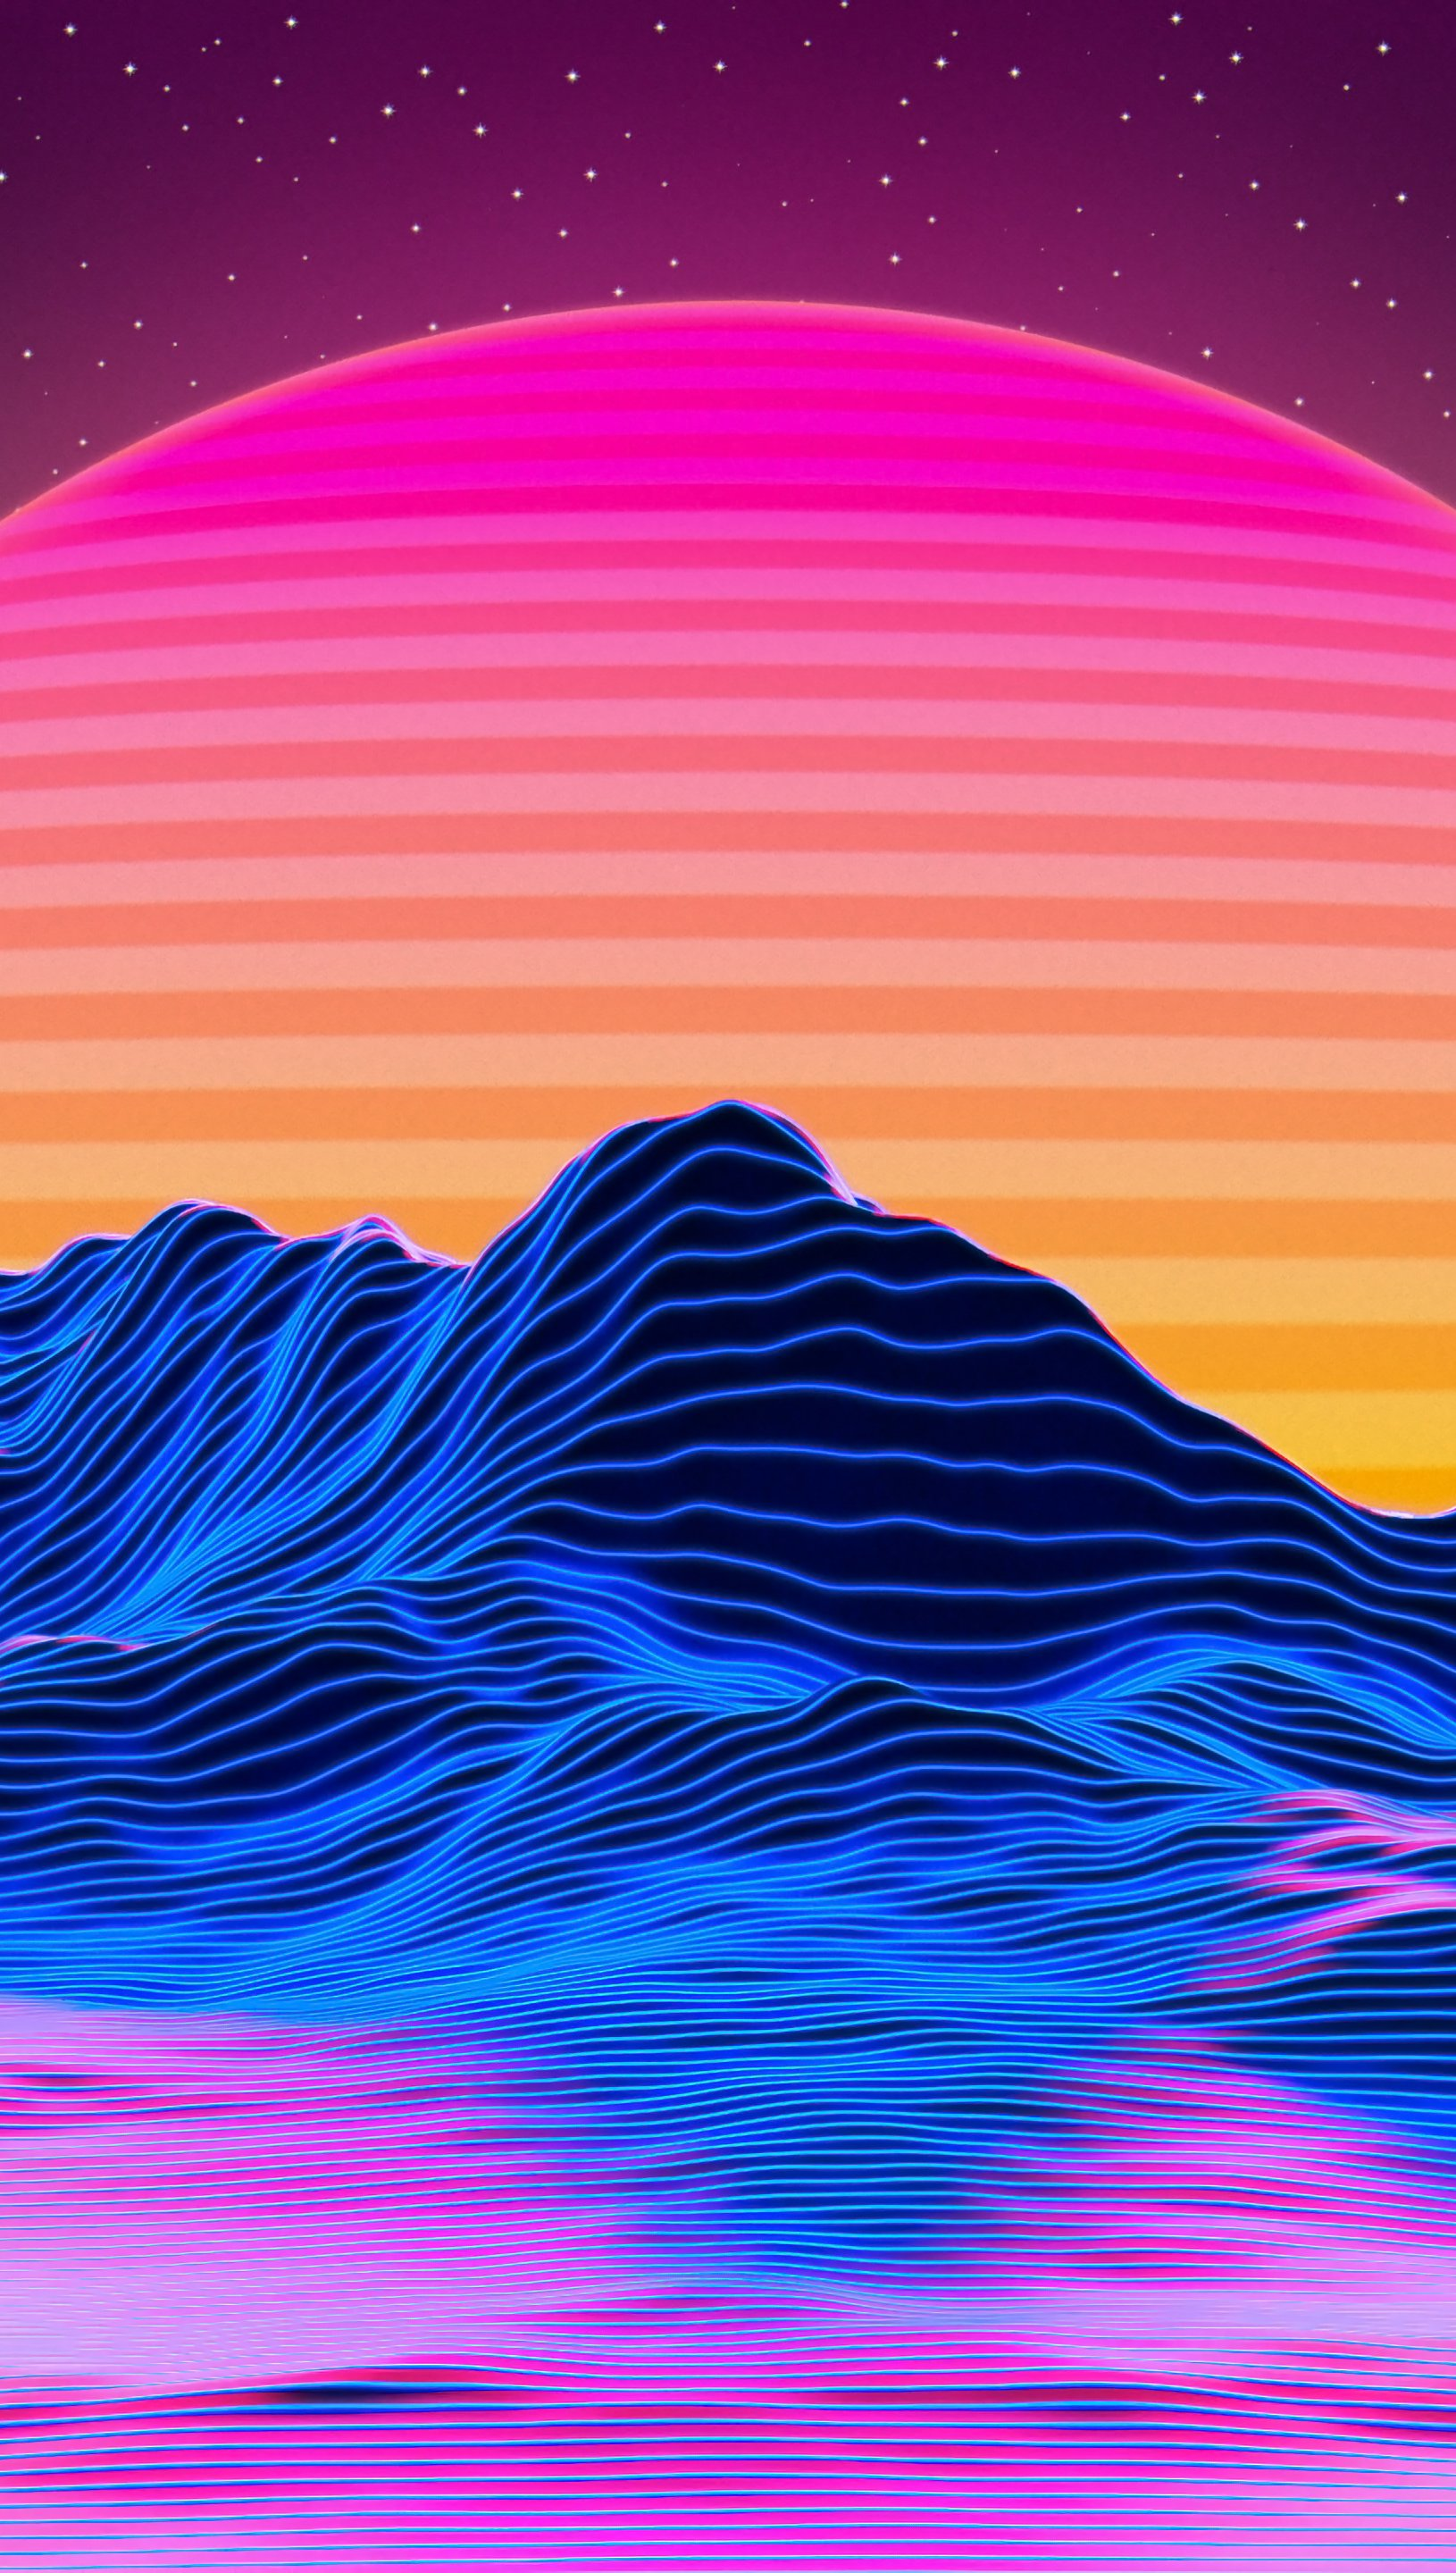 Wallpaper Retrowave mountains of star lines and sun Vertical